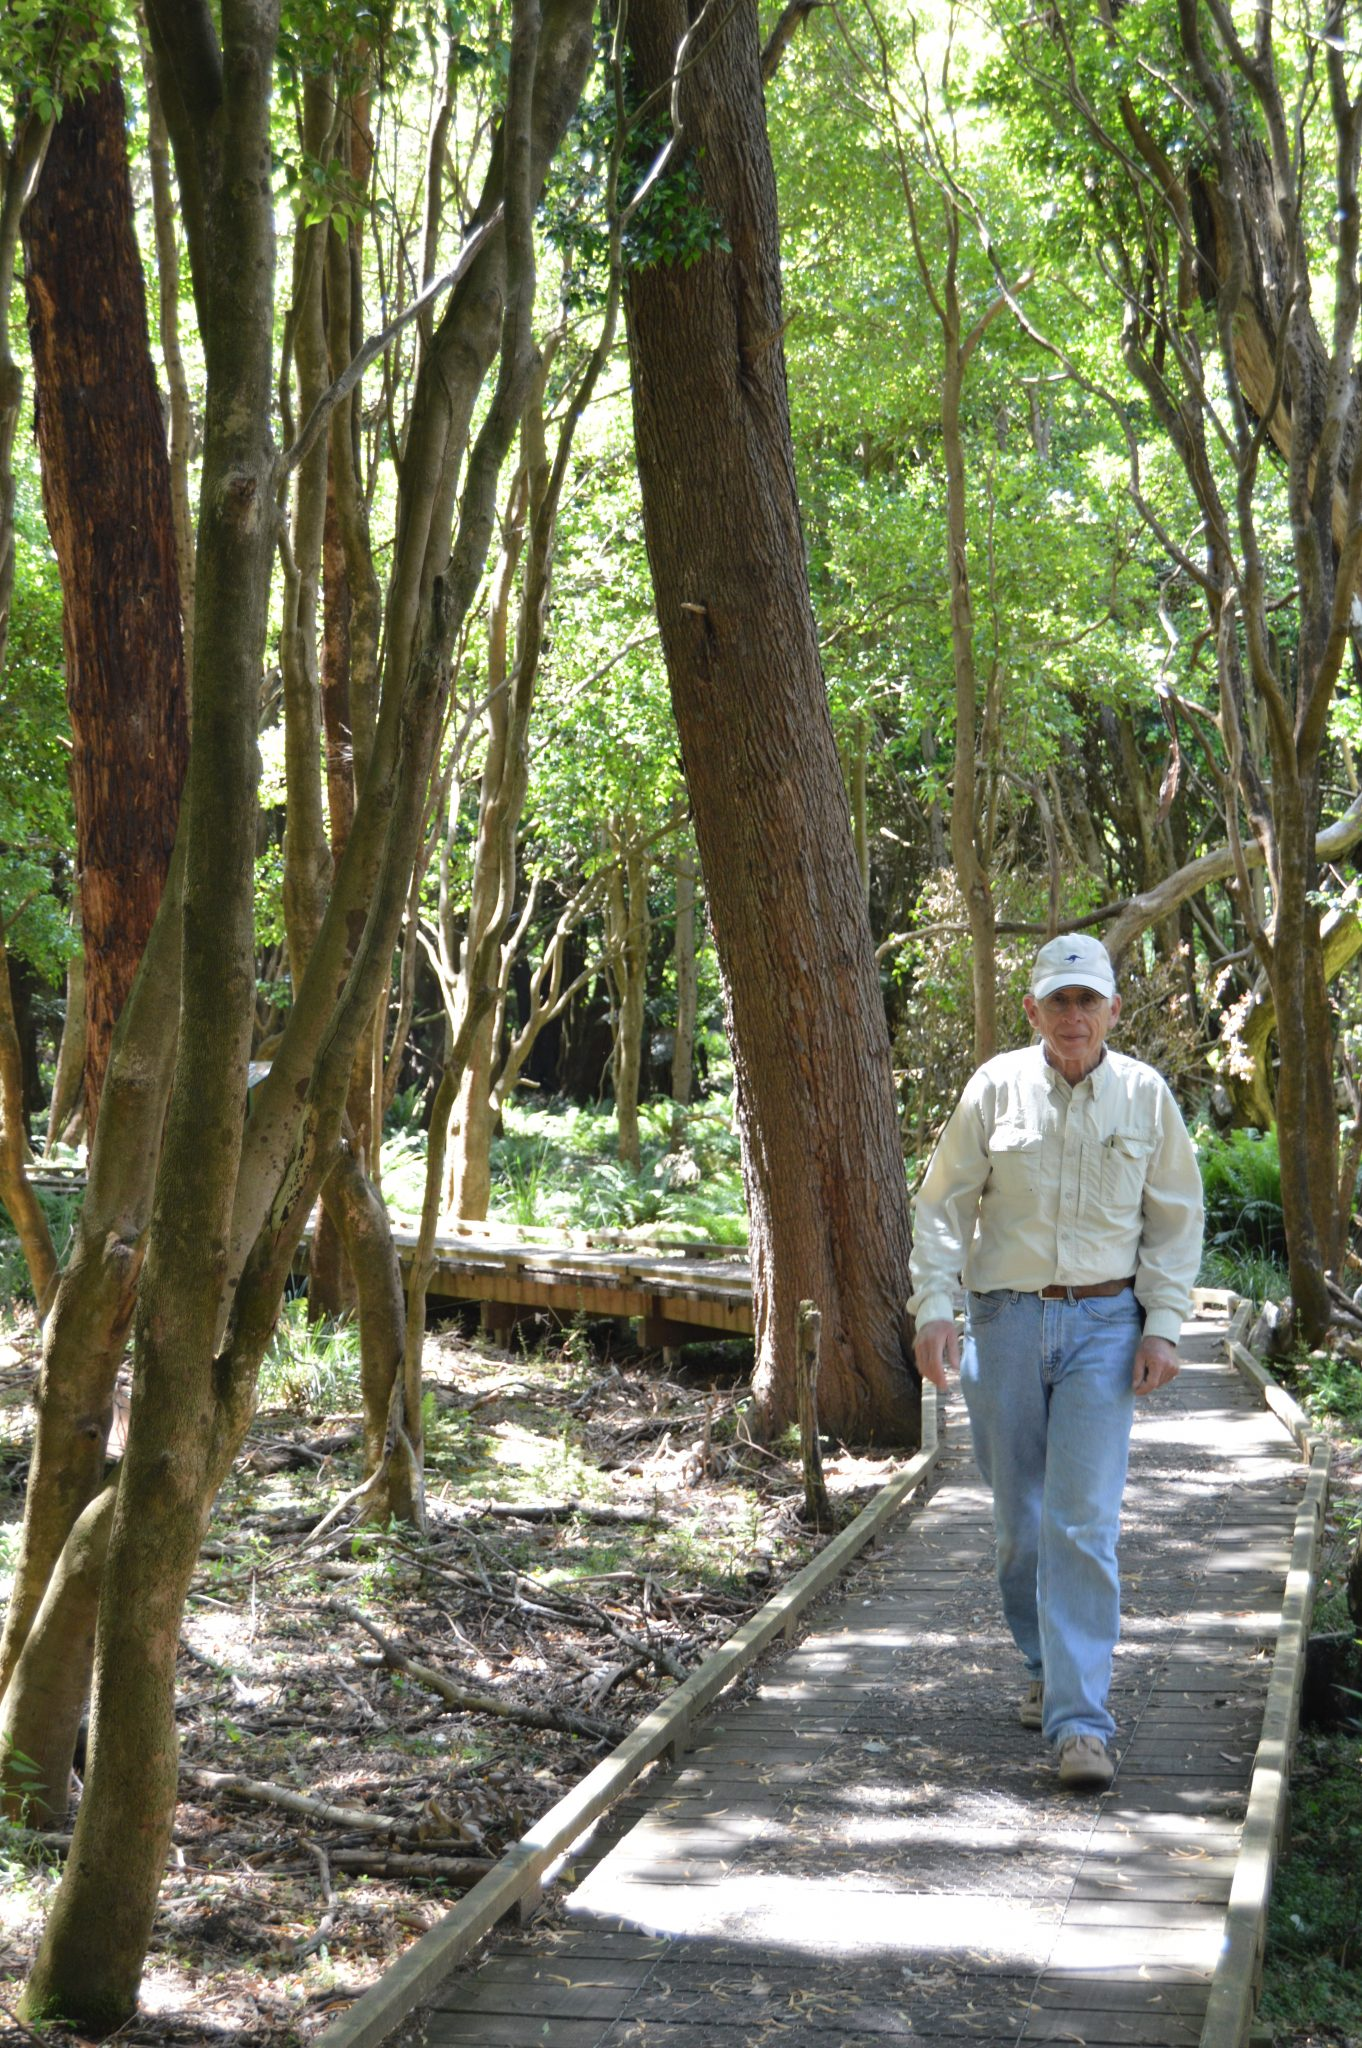 136.1. Jeff enjoyed learning about this unique forest in Victoria, Australia